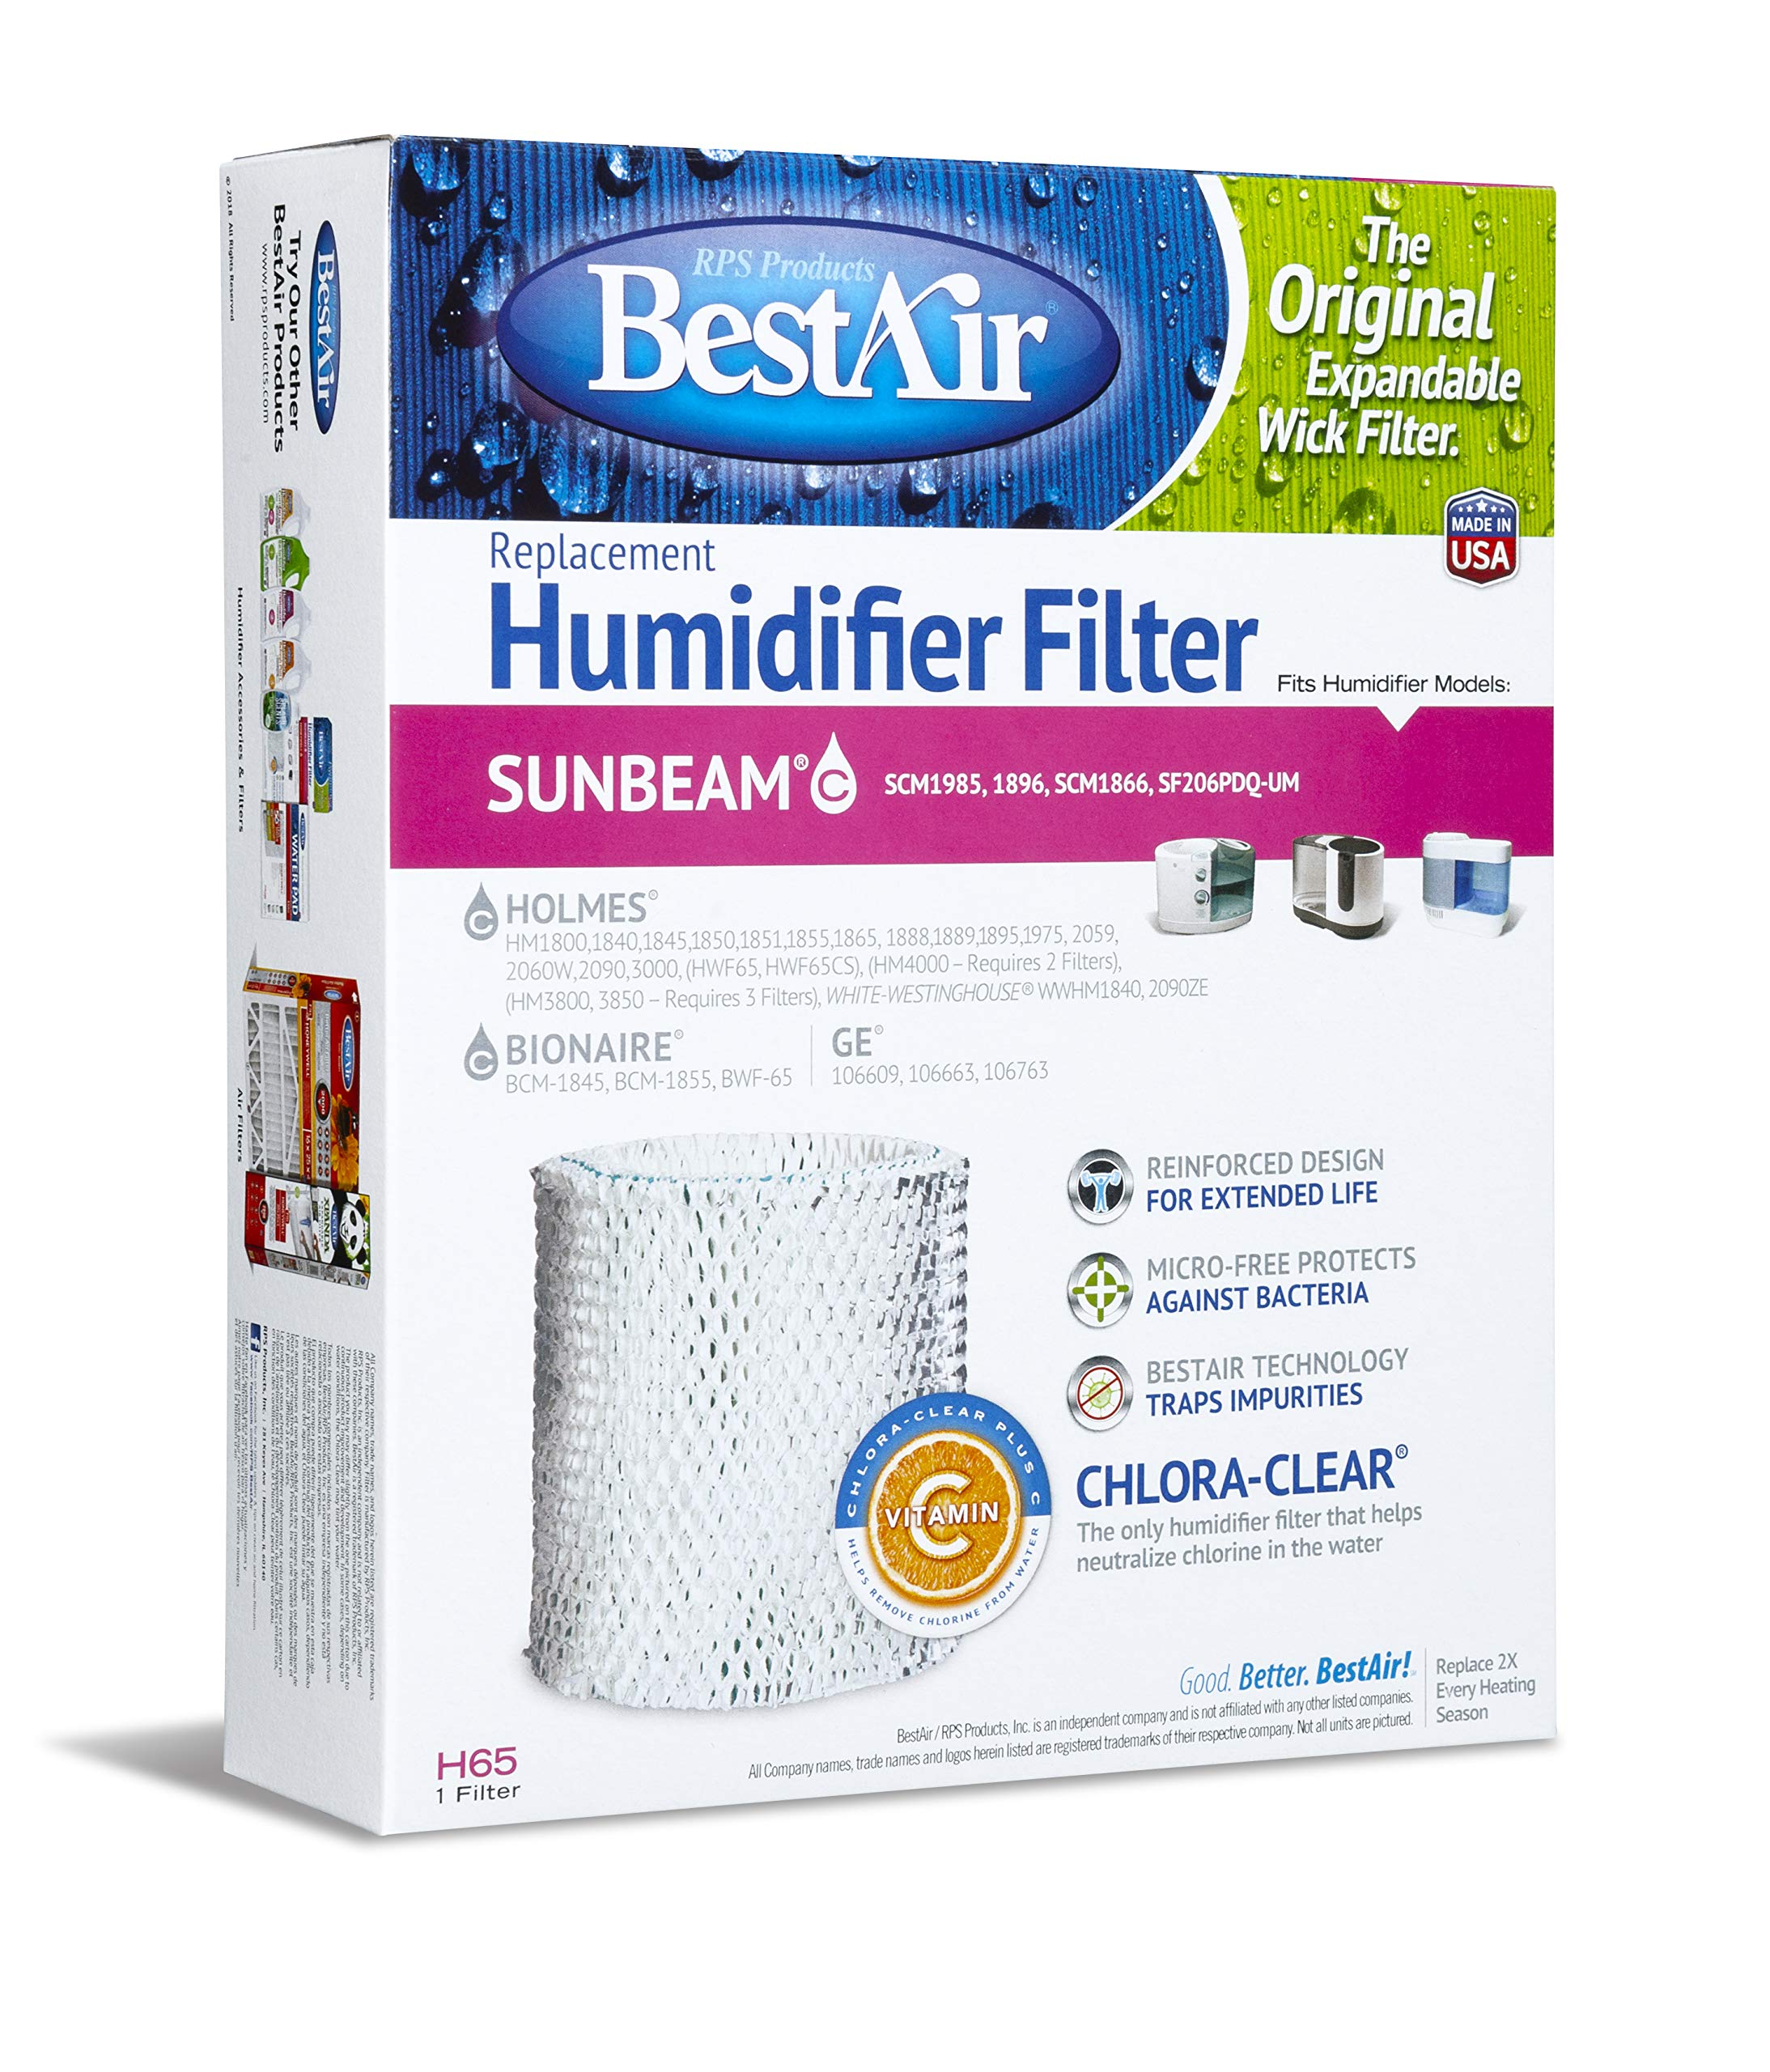 BestAir H65-PDQ-4 Extended Life Humidifier Replacement Paper Wick Humidifier Filter, For Holmes, Sunbeam, White-Westinghouse, GE & Bionaire Models, 8.2'' x 2.7'' x 10'', 4 Pack by BestAir